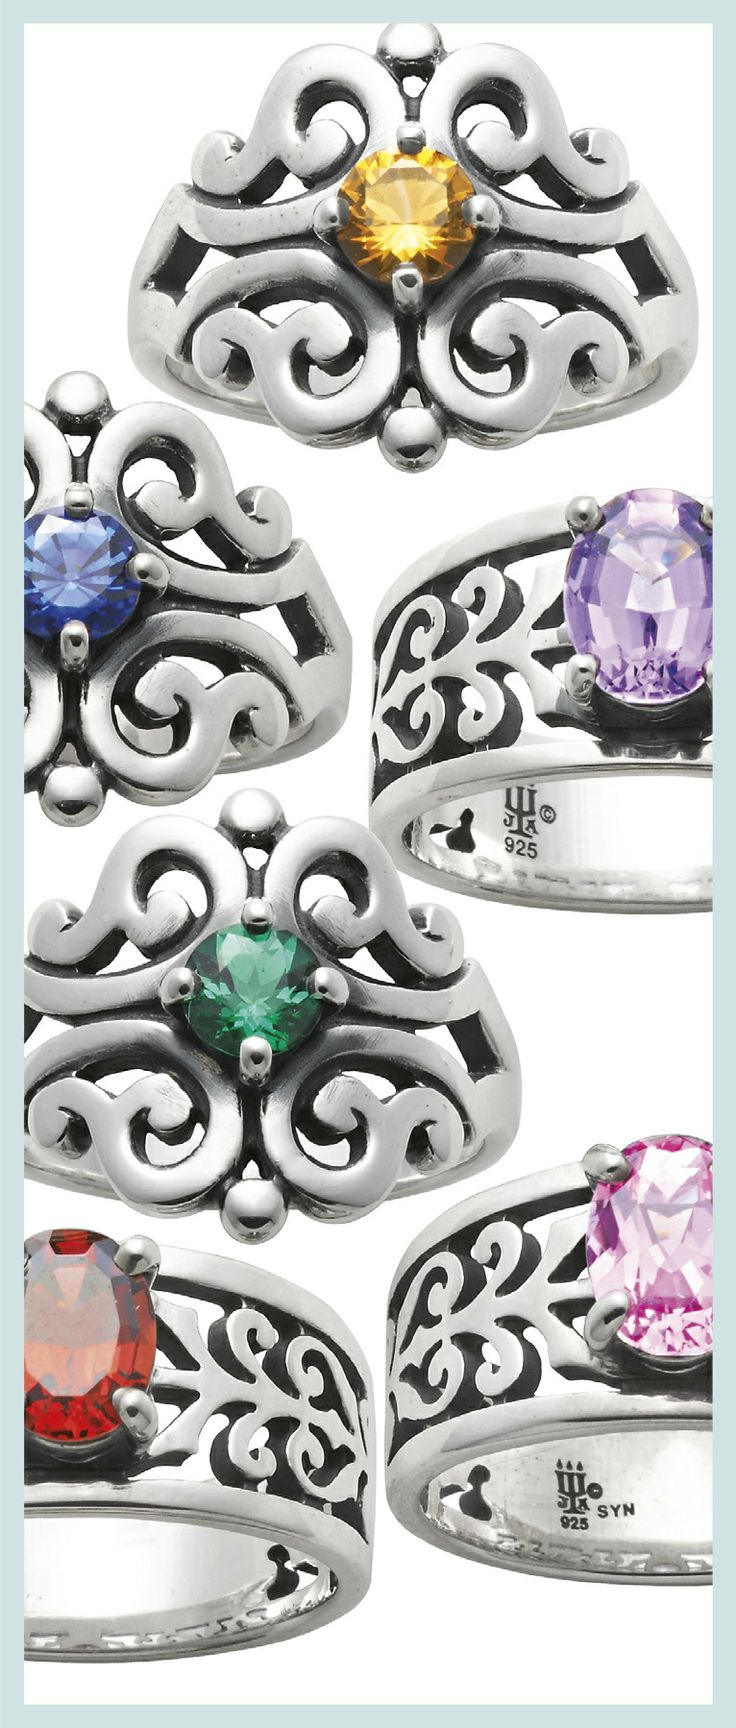 Spanish Lace Rings and Adoree Rings with Gemstones #jamesavery #rings